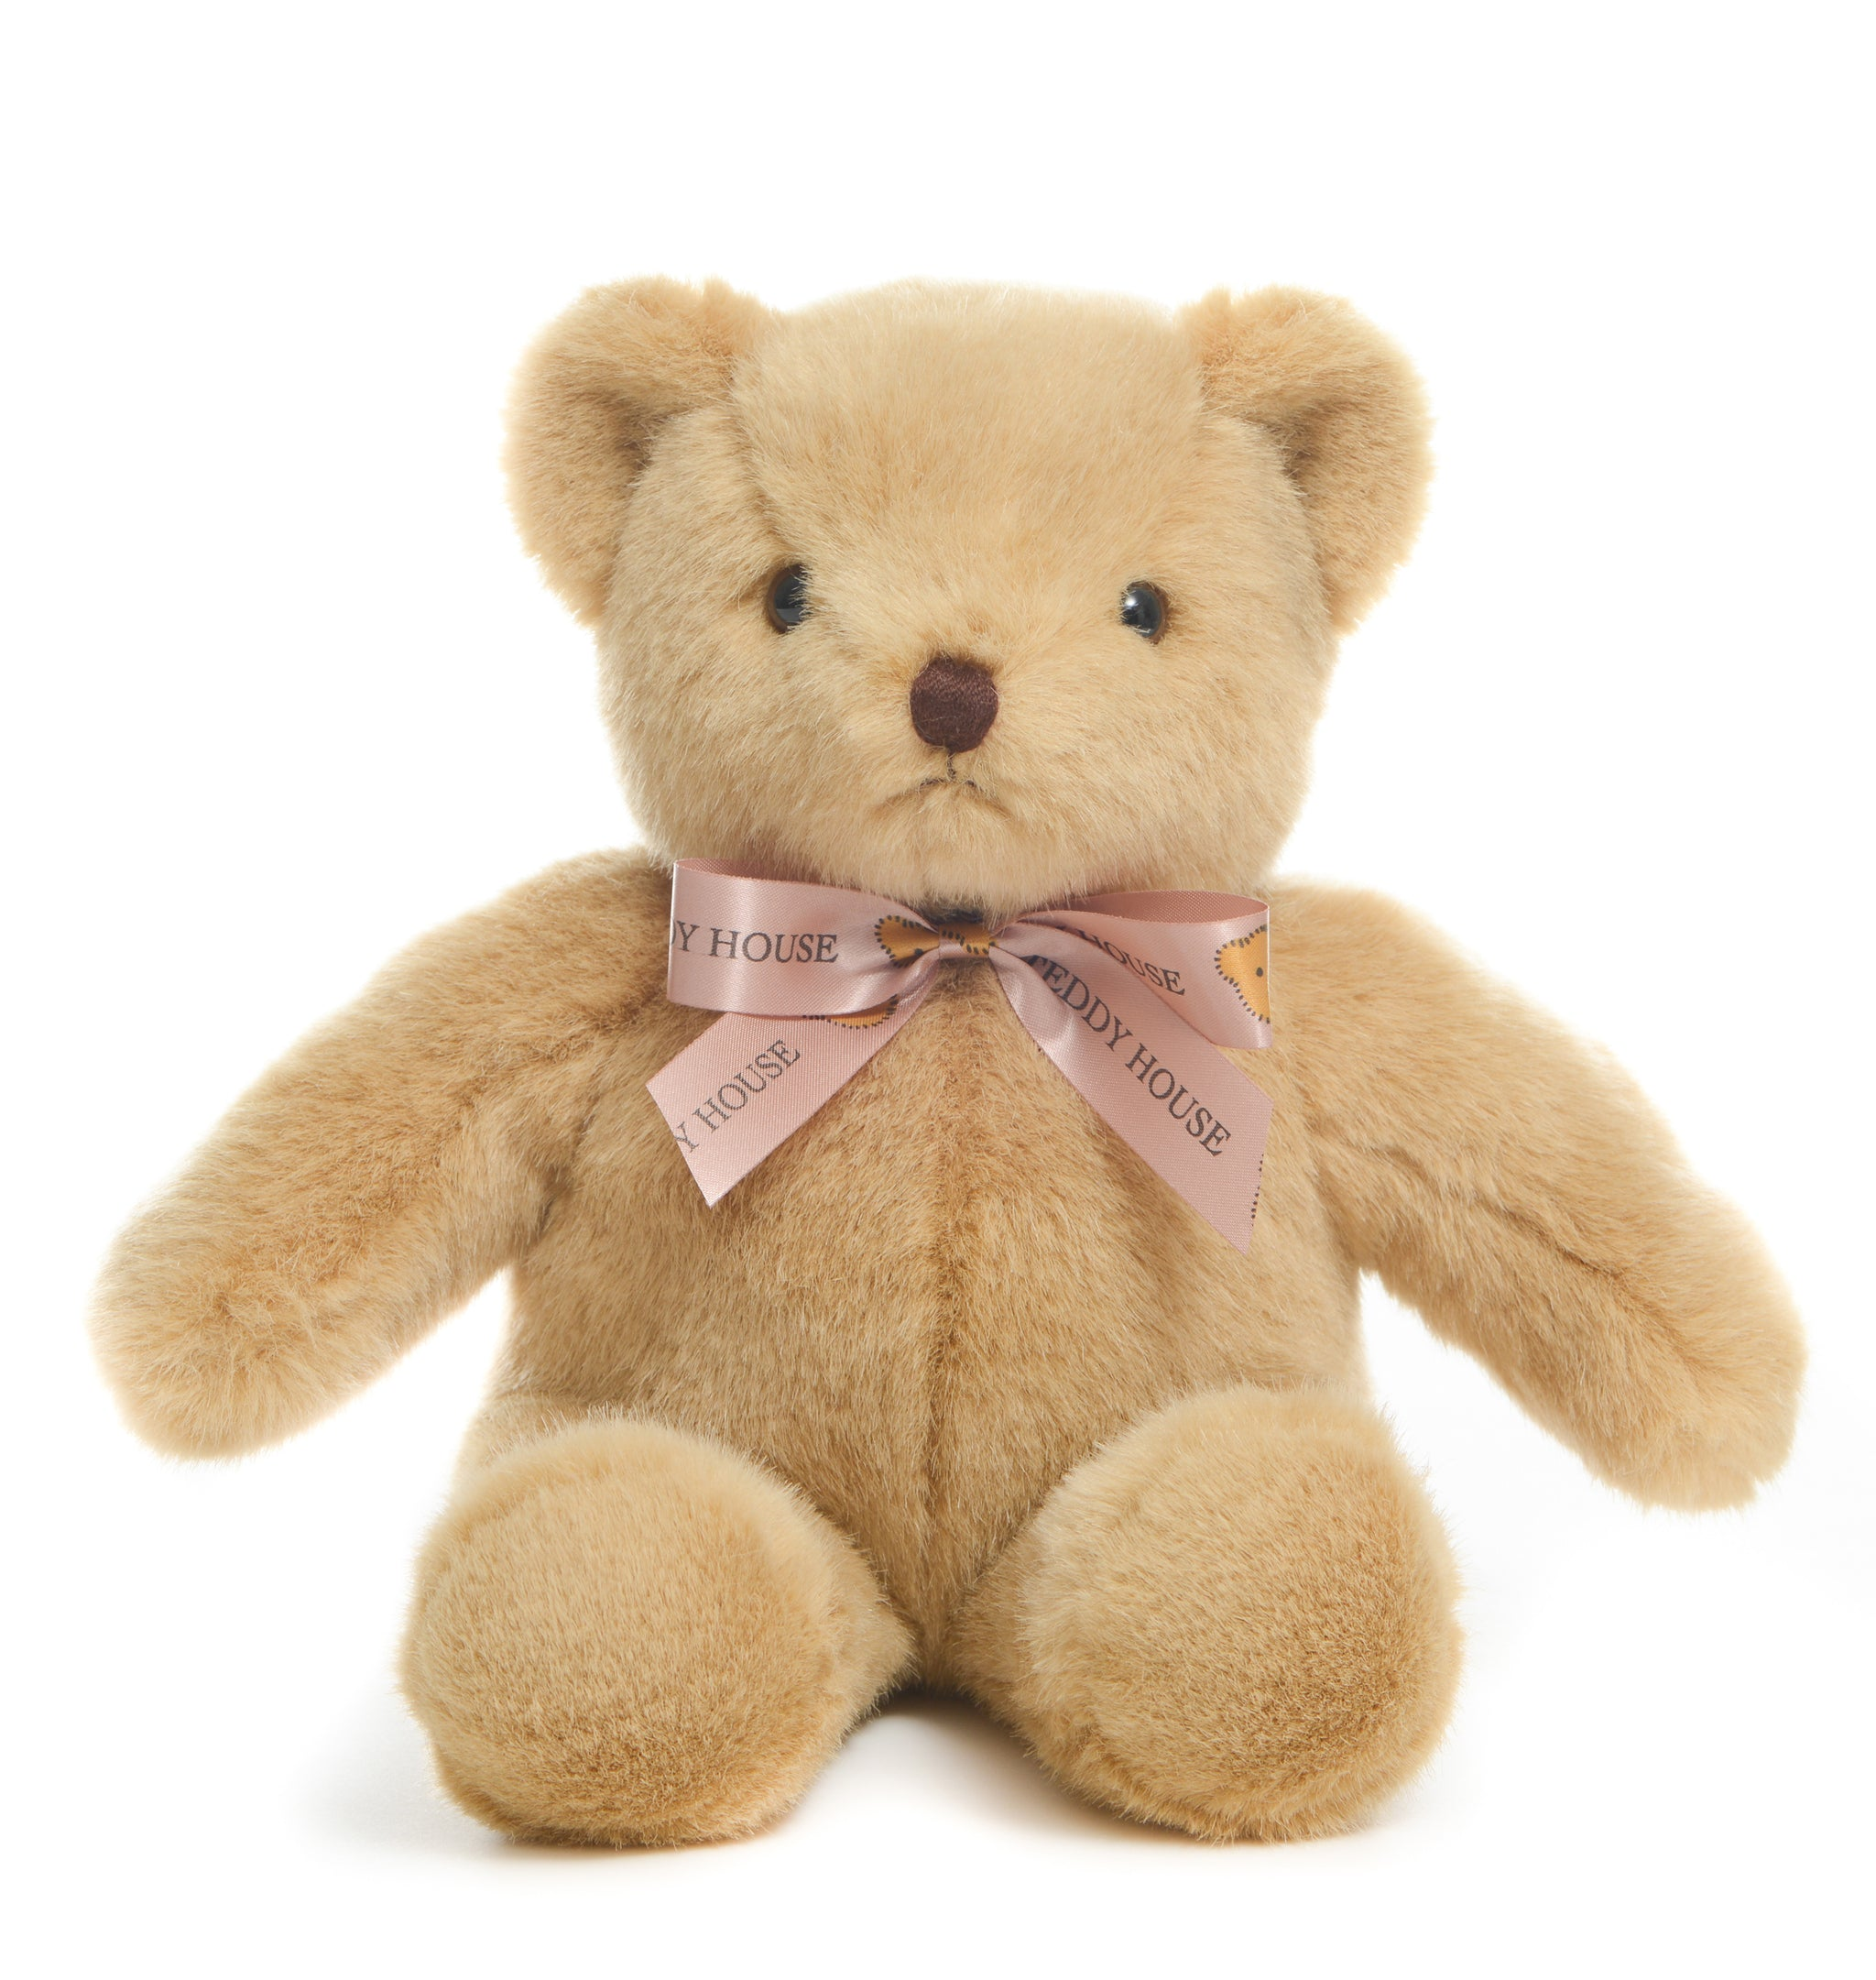 TEDDY HOUSE BONEKA TEDDY BEAR TAMBO BEAR 14 INCH